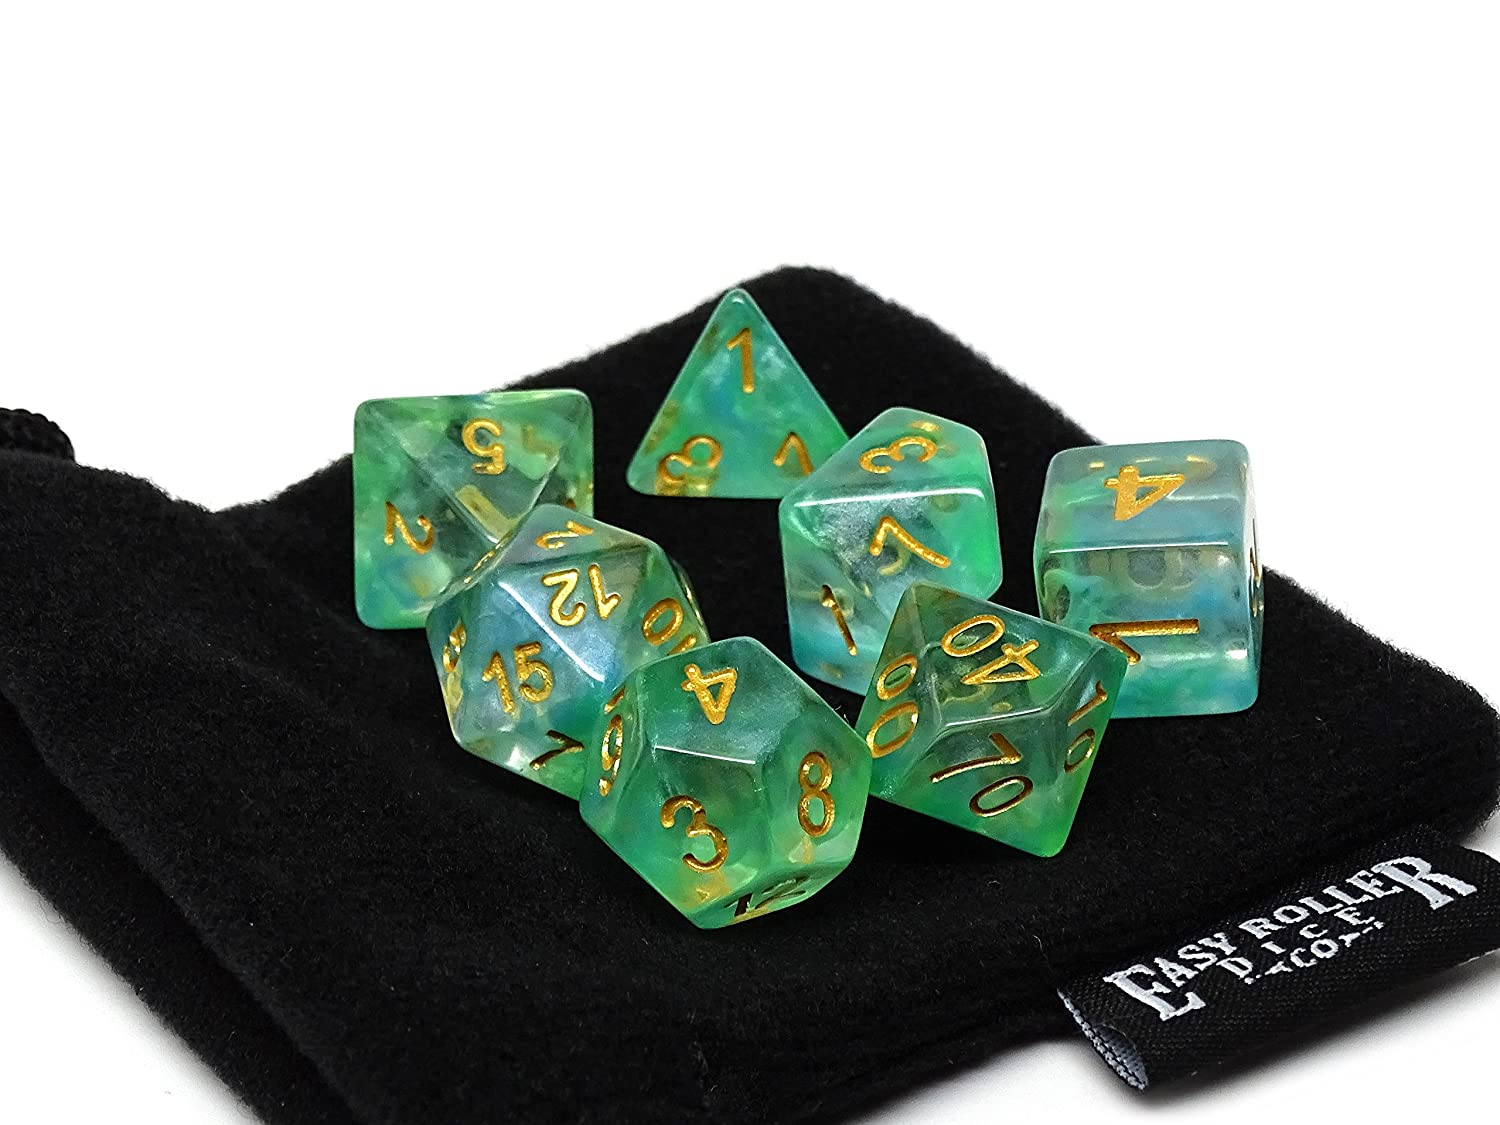 Ocean Glacier Polyhedral Dice Set 7 Piece PRISTINE Edition FREE Carrying Bag Hand Checked Quality   B079LX5922